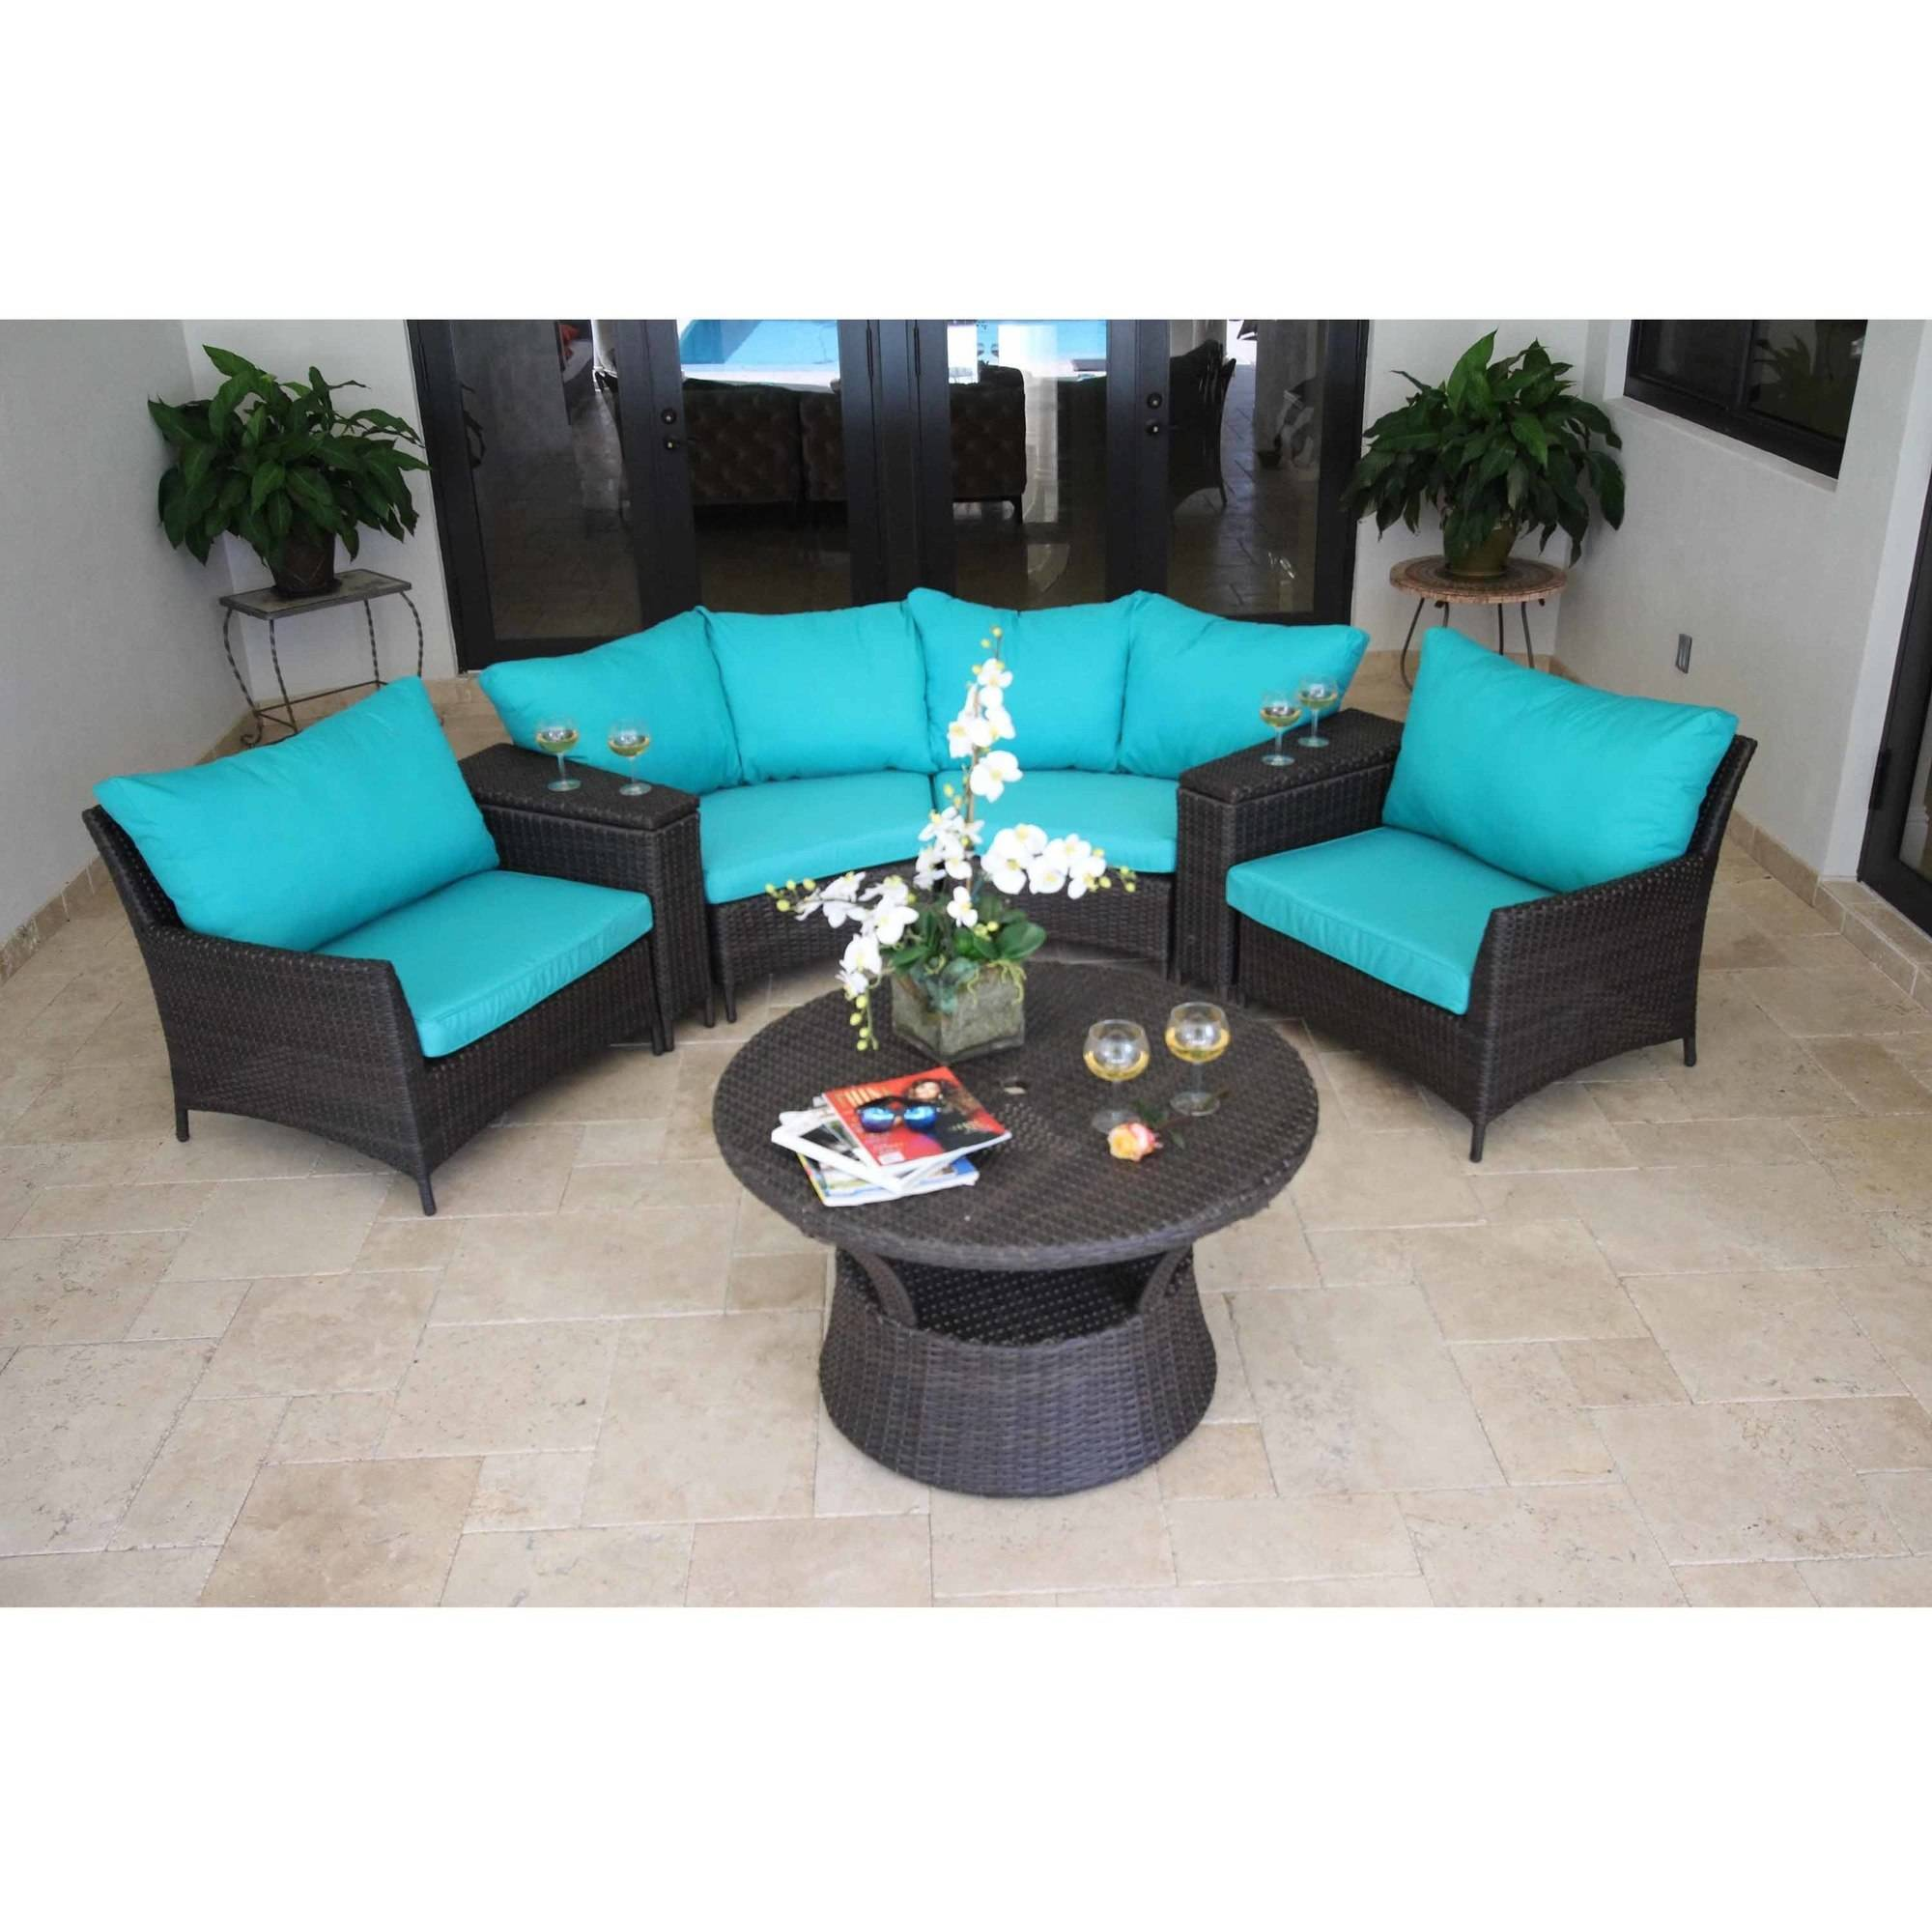 Fratellino 7-Piece Sectional Seating Set